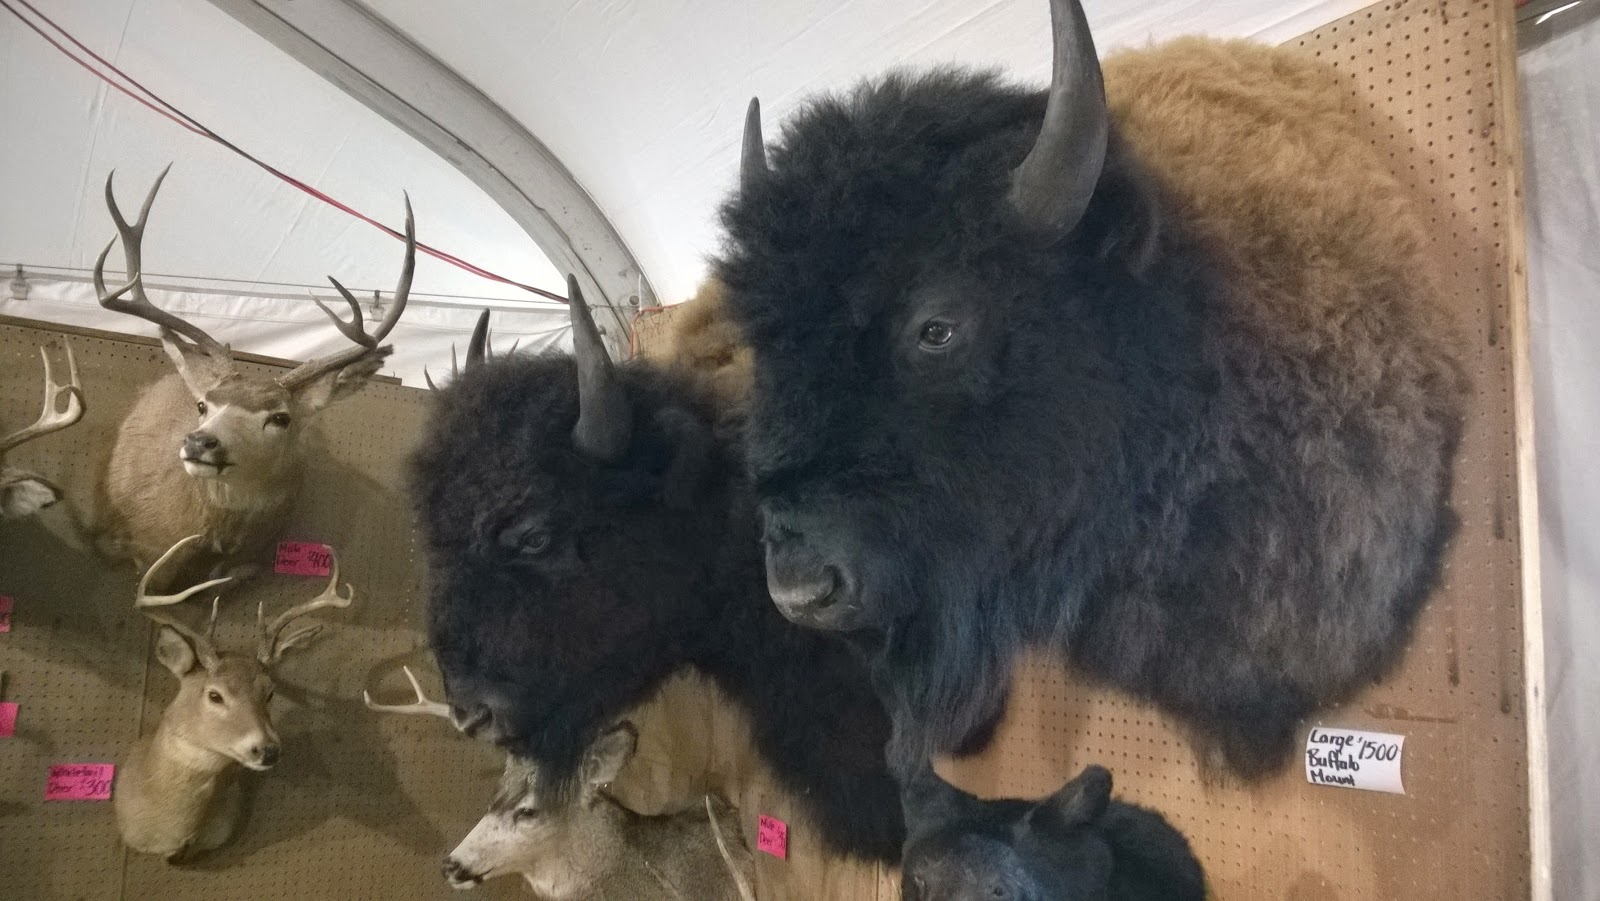 Mounted animal heads, including bison bulls